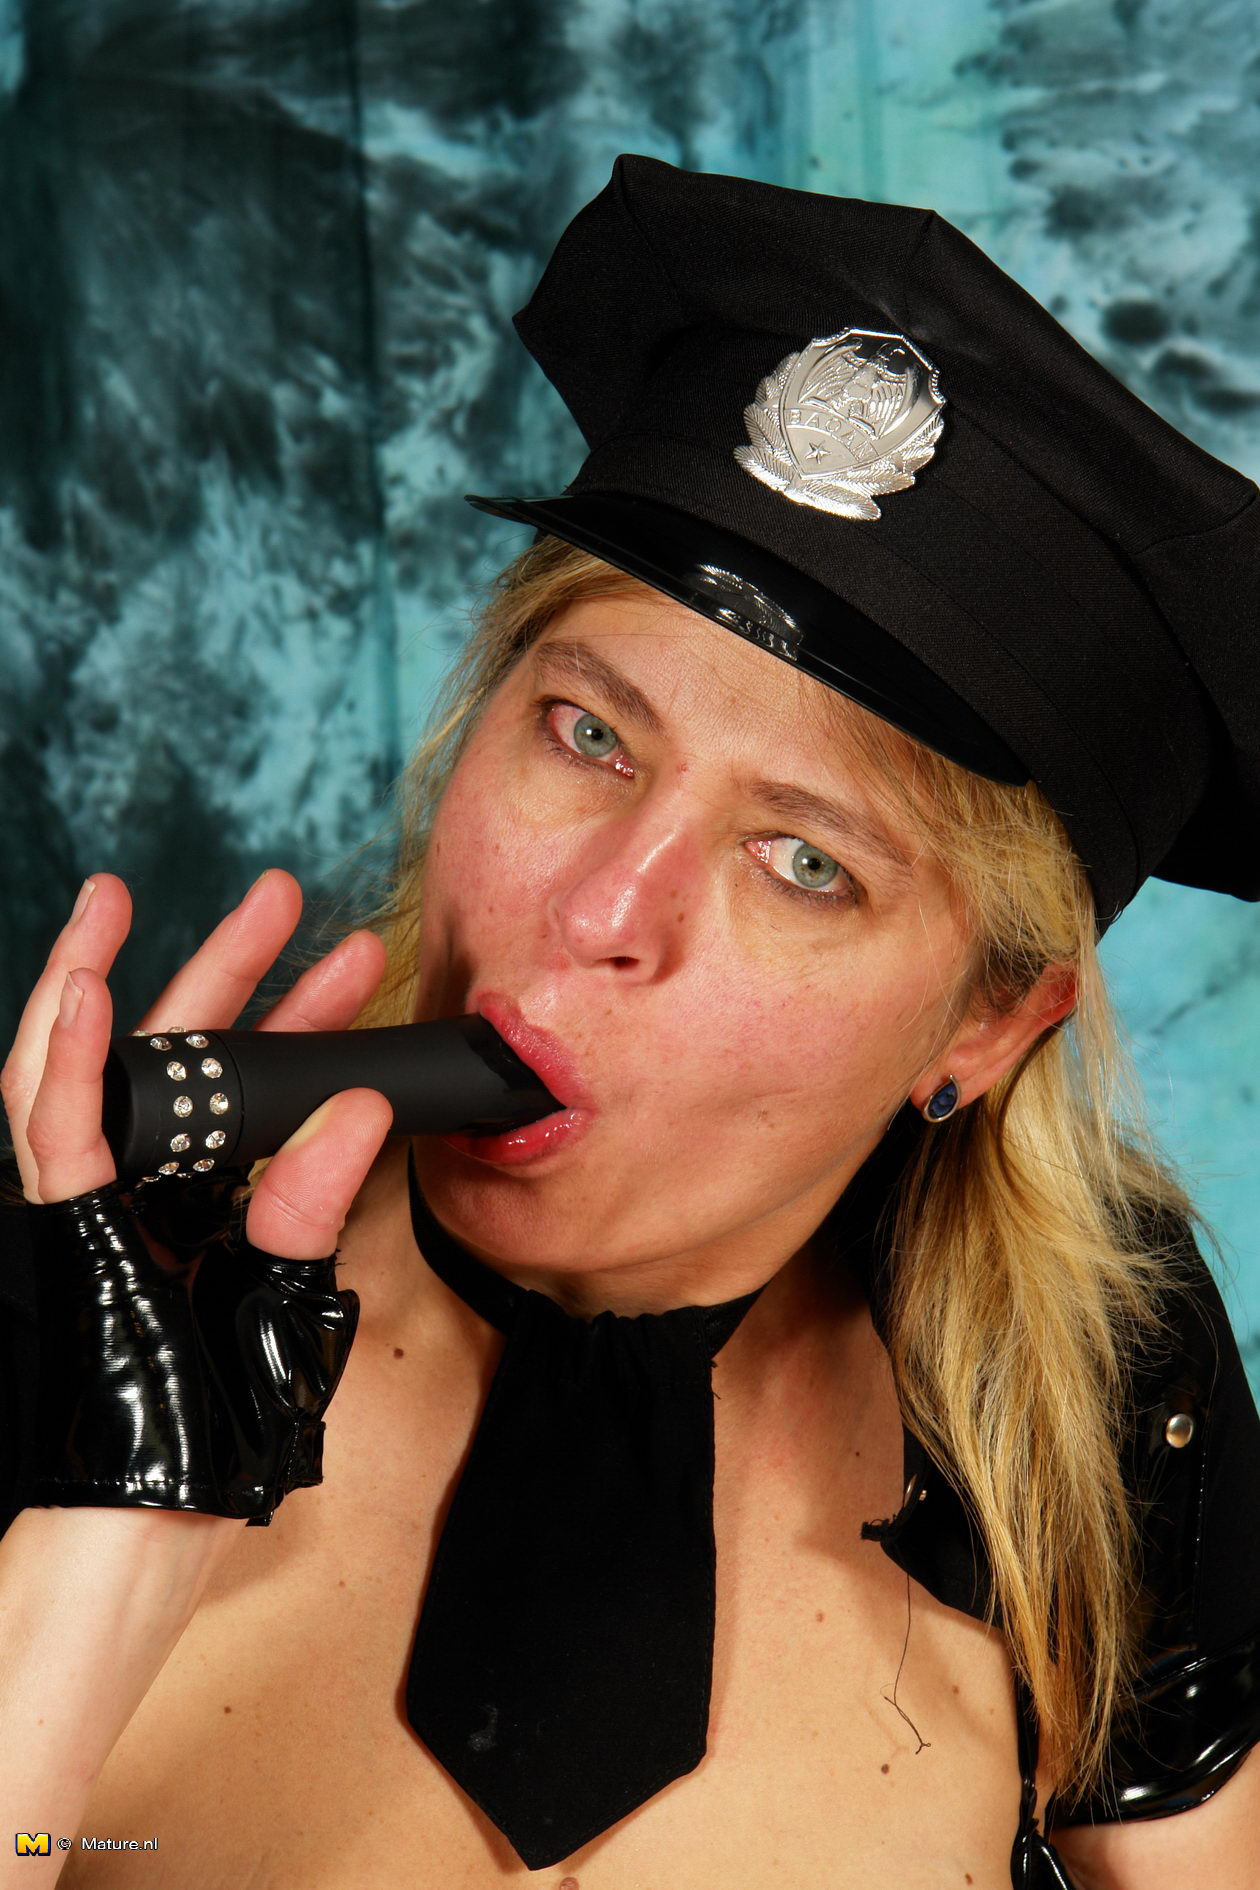 Mature female cop made a young criminal her sex slave 1